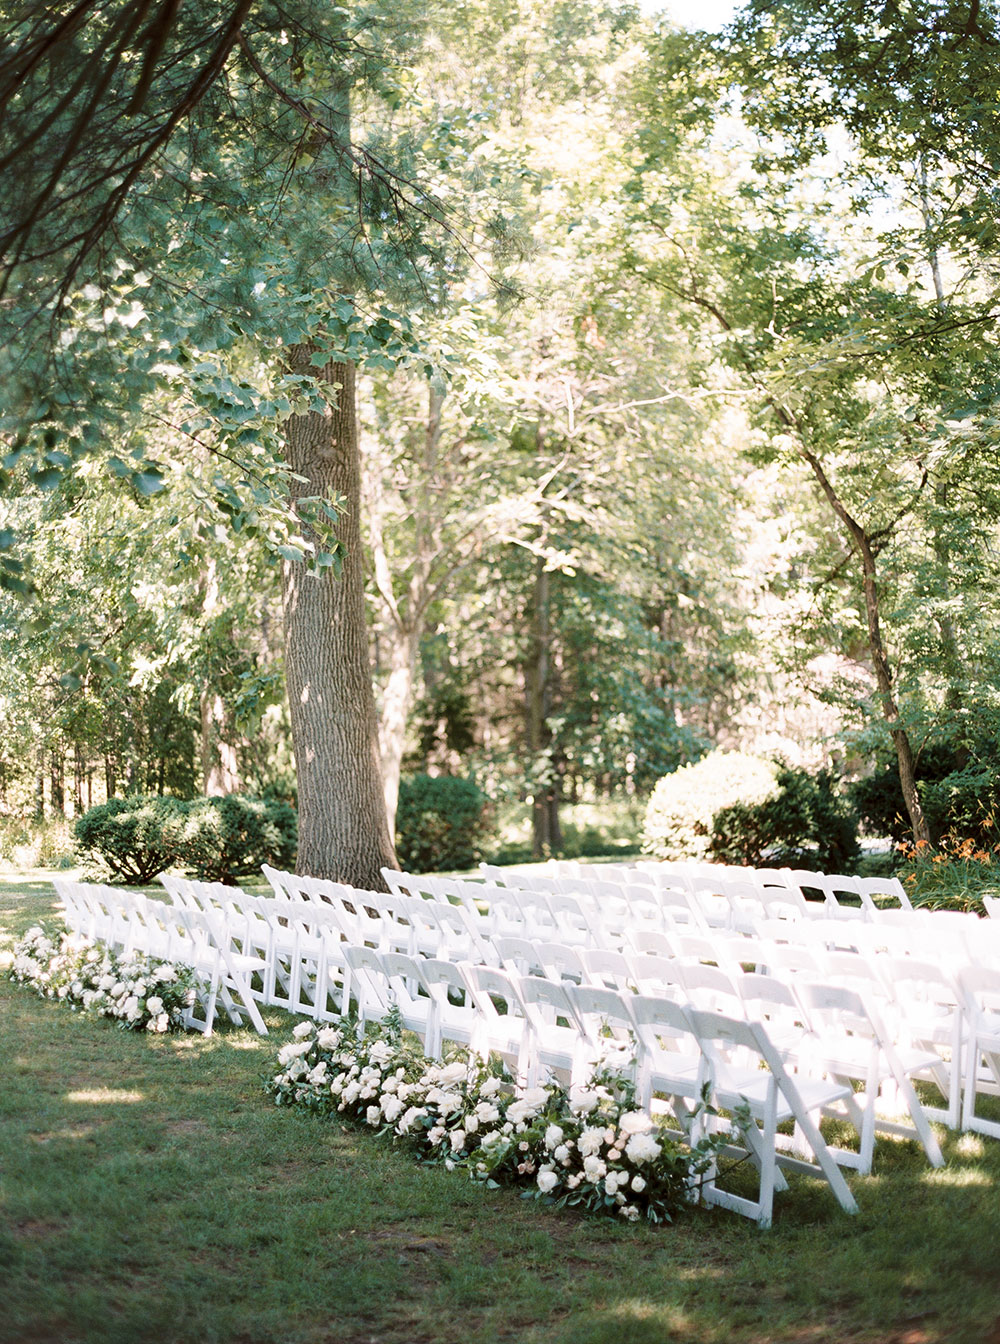 kurtz-orchards-wedding-gracewood-estate-niagara-on-the-lake-photo-by-katie-nicolle-photography-0018.JPG